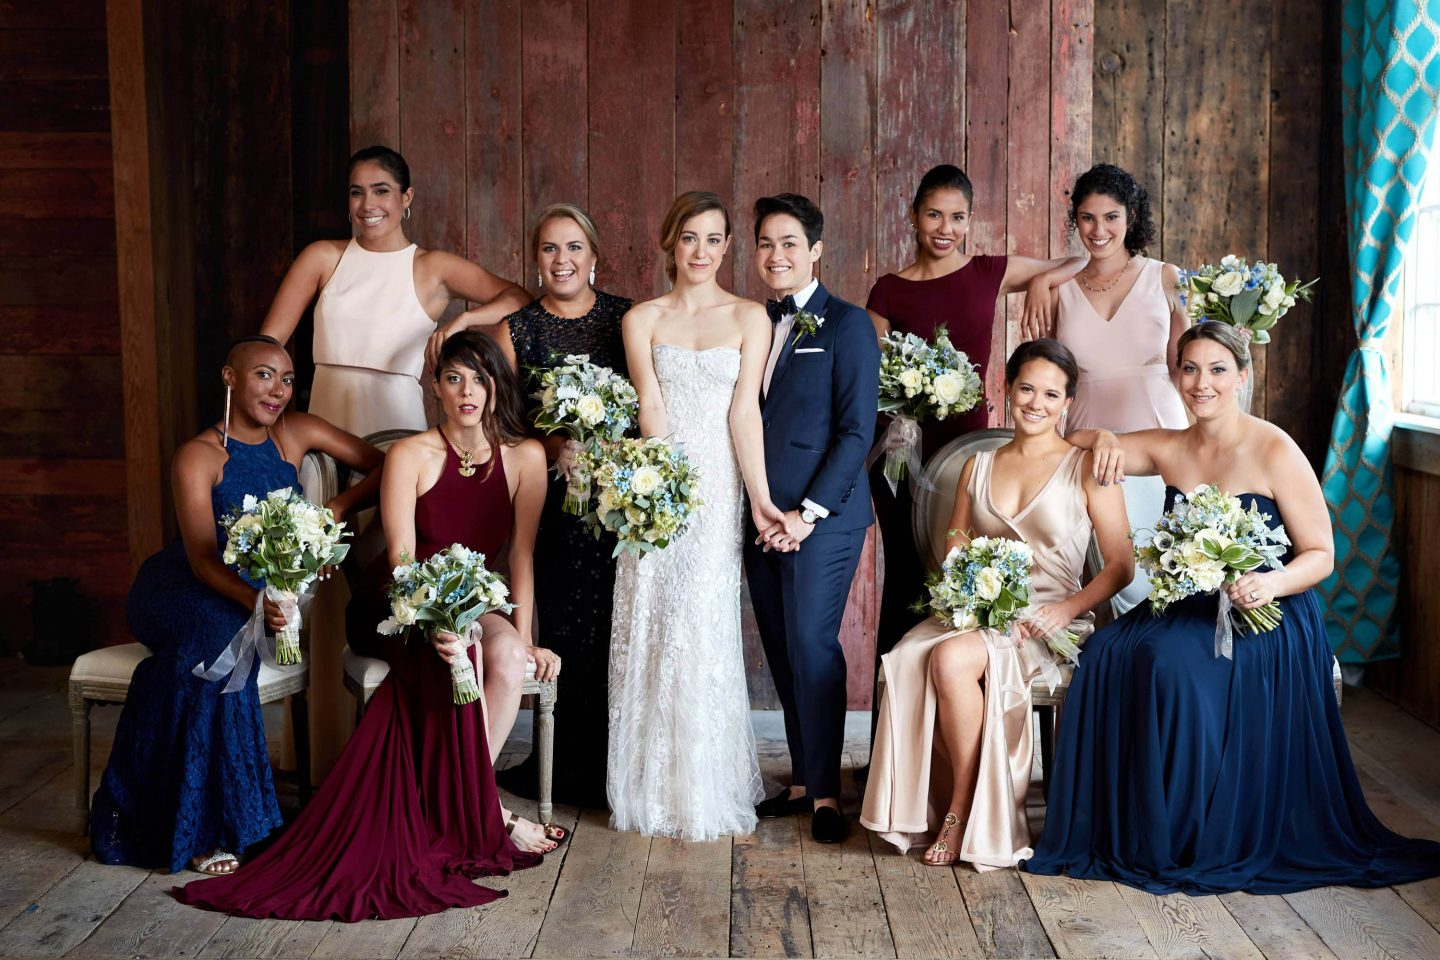 Bridal party at this camp-themed wedding weekend at Cedar Lakes Estate in Upstate NY, USA | Photo by Christian Oth Studios